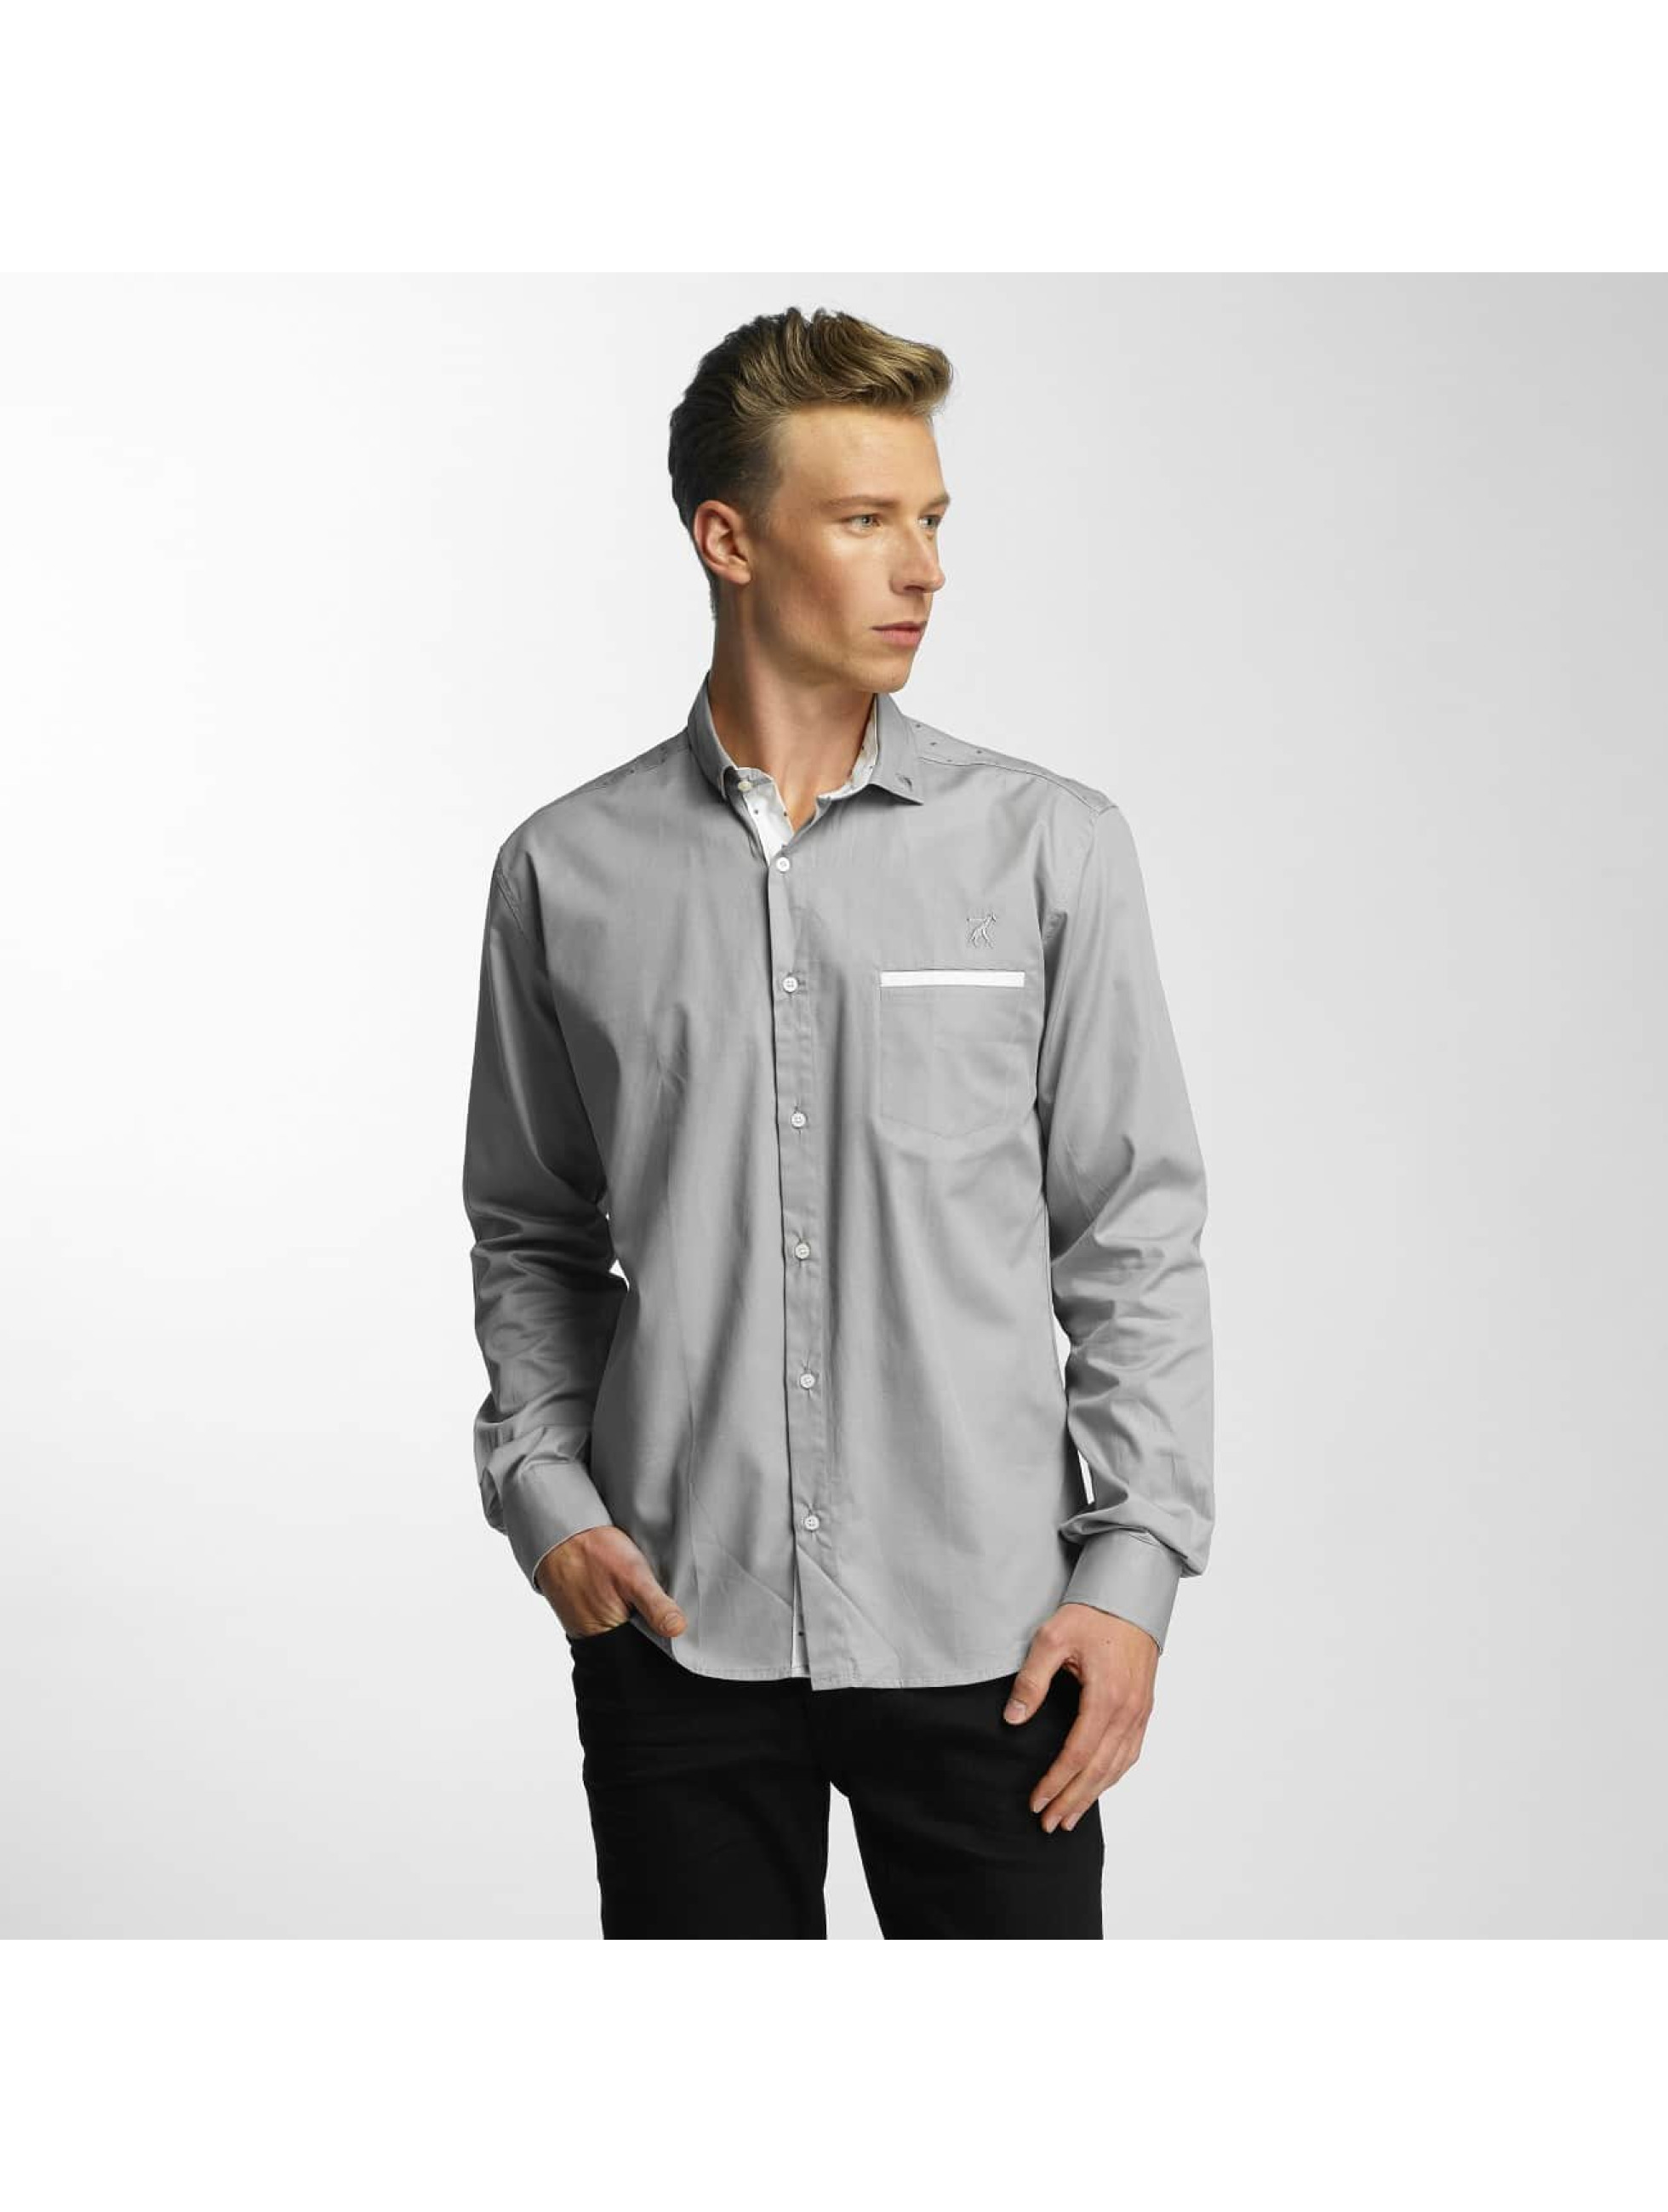 Cazzy Clang / Shirt Squares in grey XL